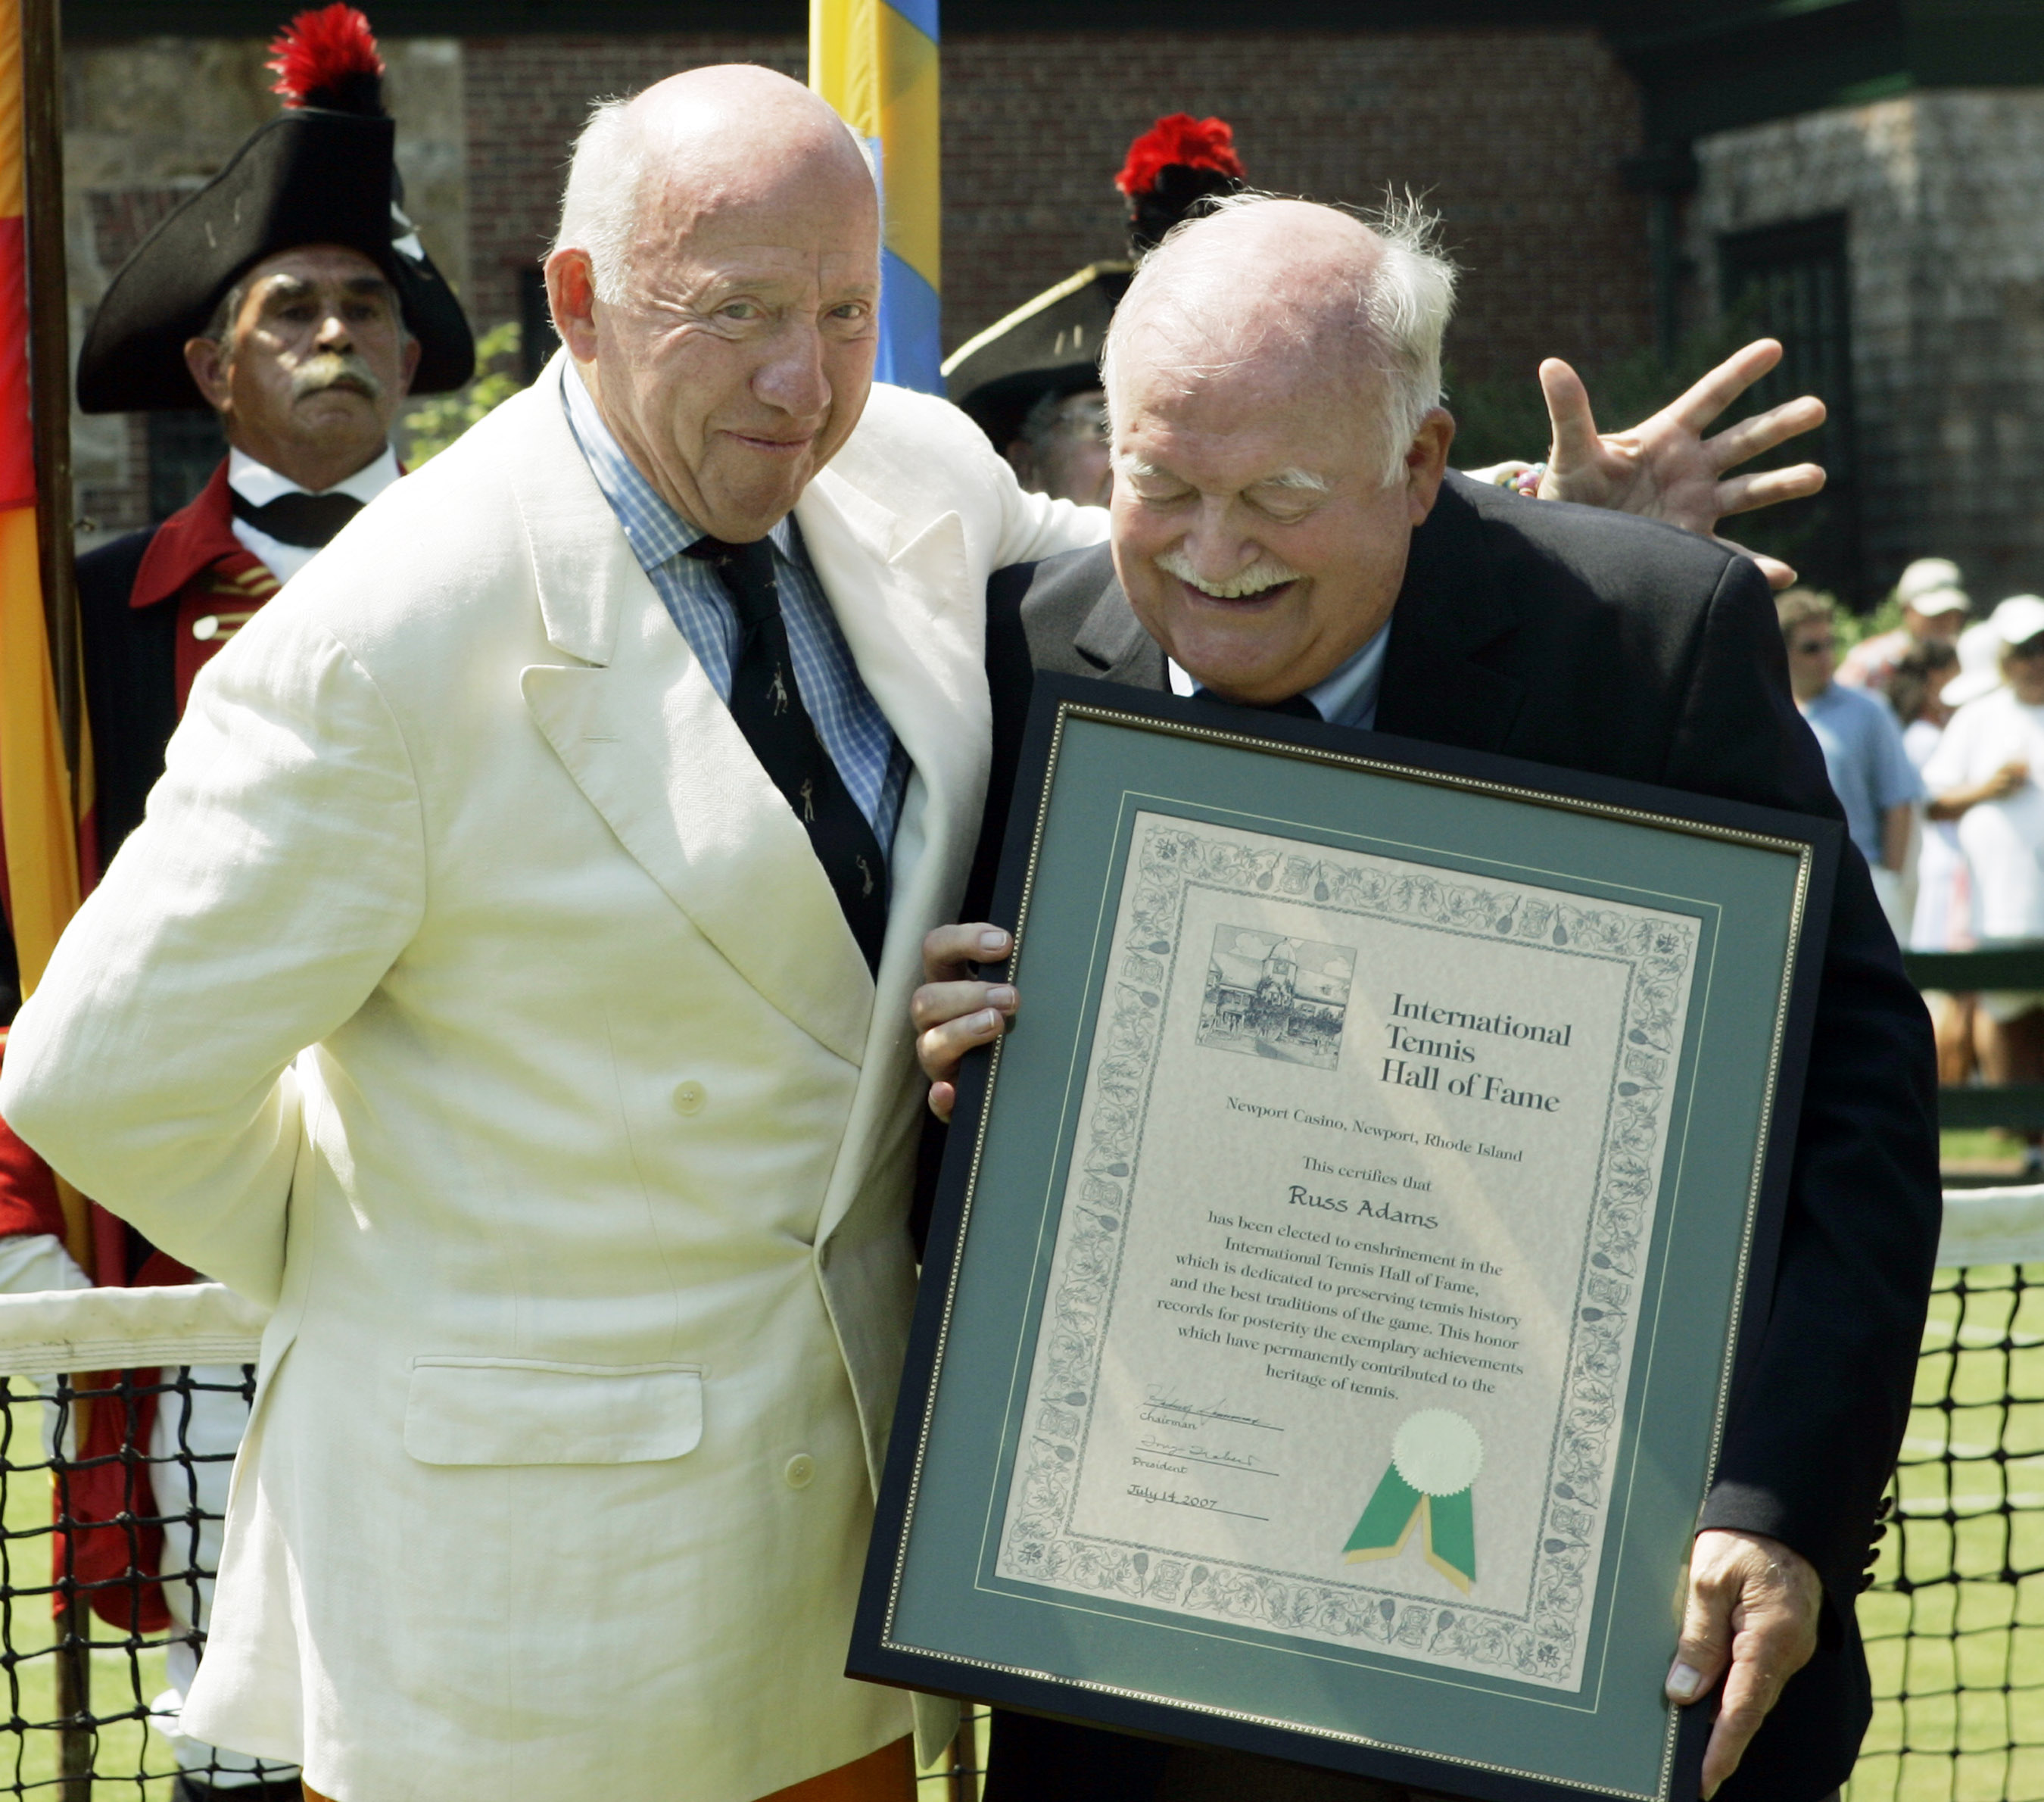 Presenter Bud Collins, left, puts his arm around photographer Russ Adams as they pose for photos after Adams' induction into the International Tennis Hall of Fame in Newport, R.I. Saturday, July 14, 2007. (AP Photo/Elise Amendola)